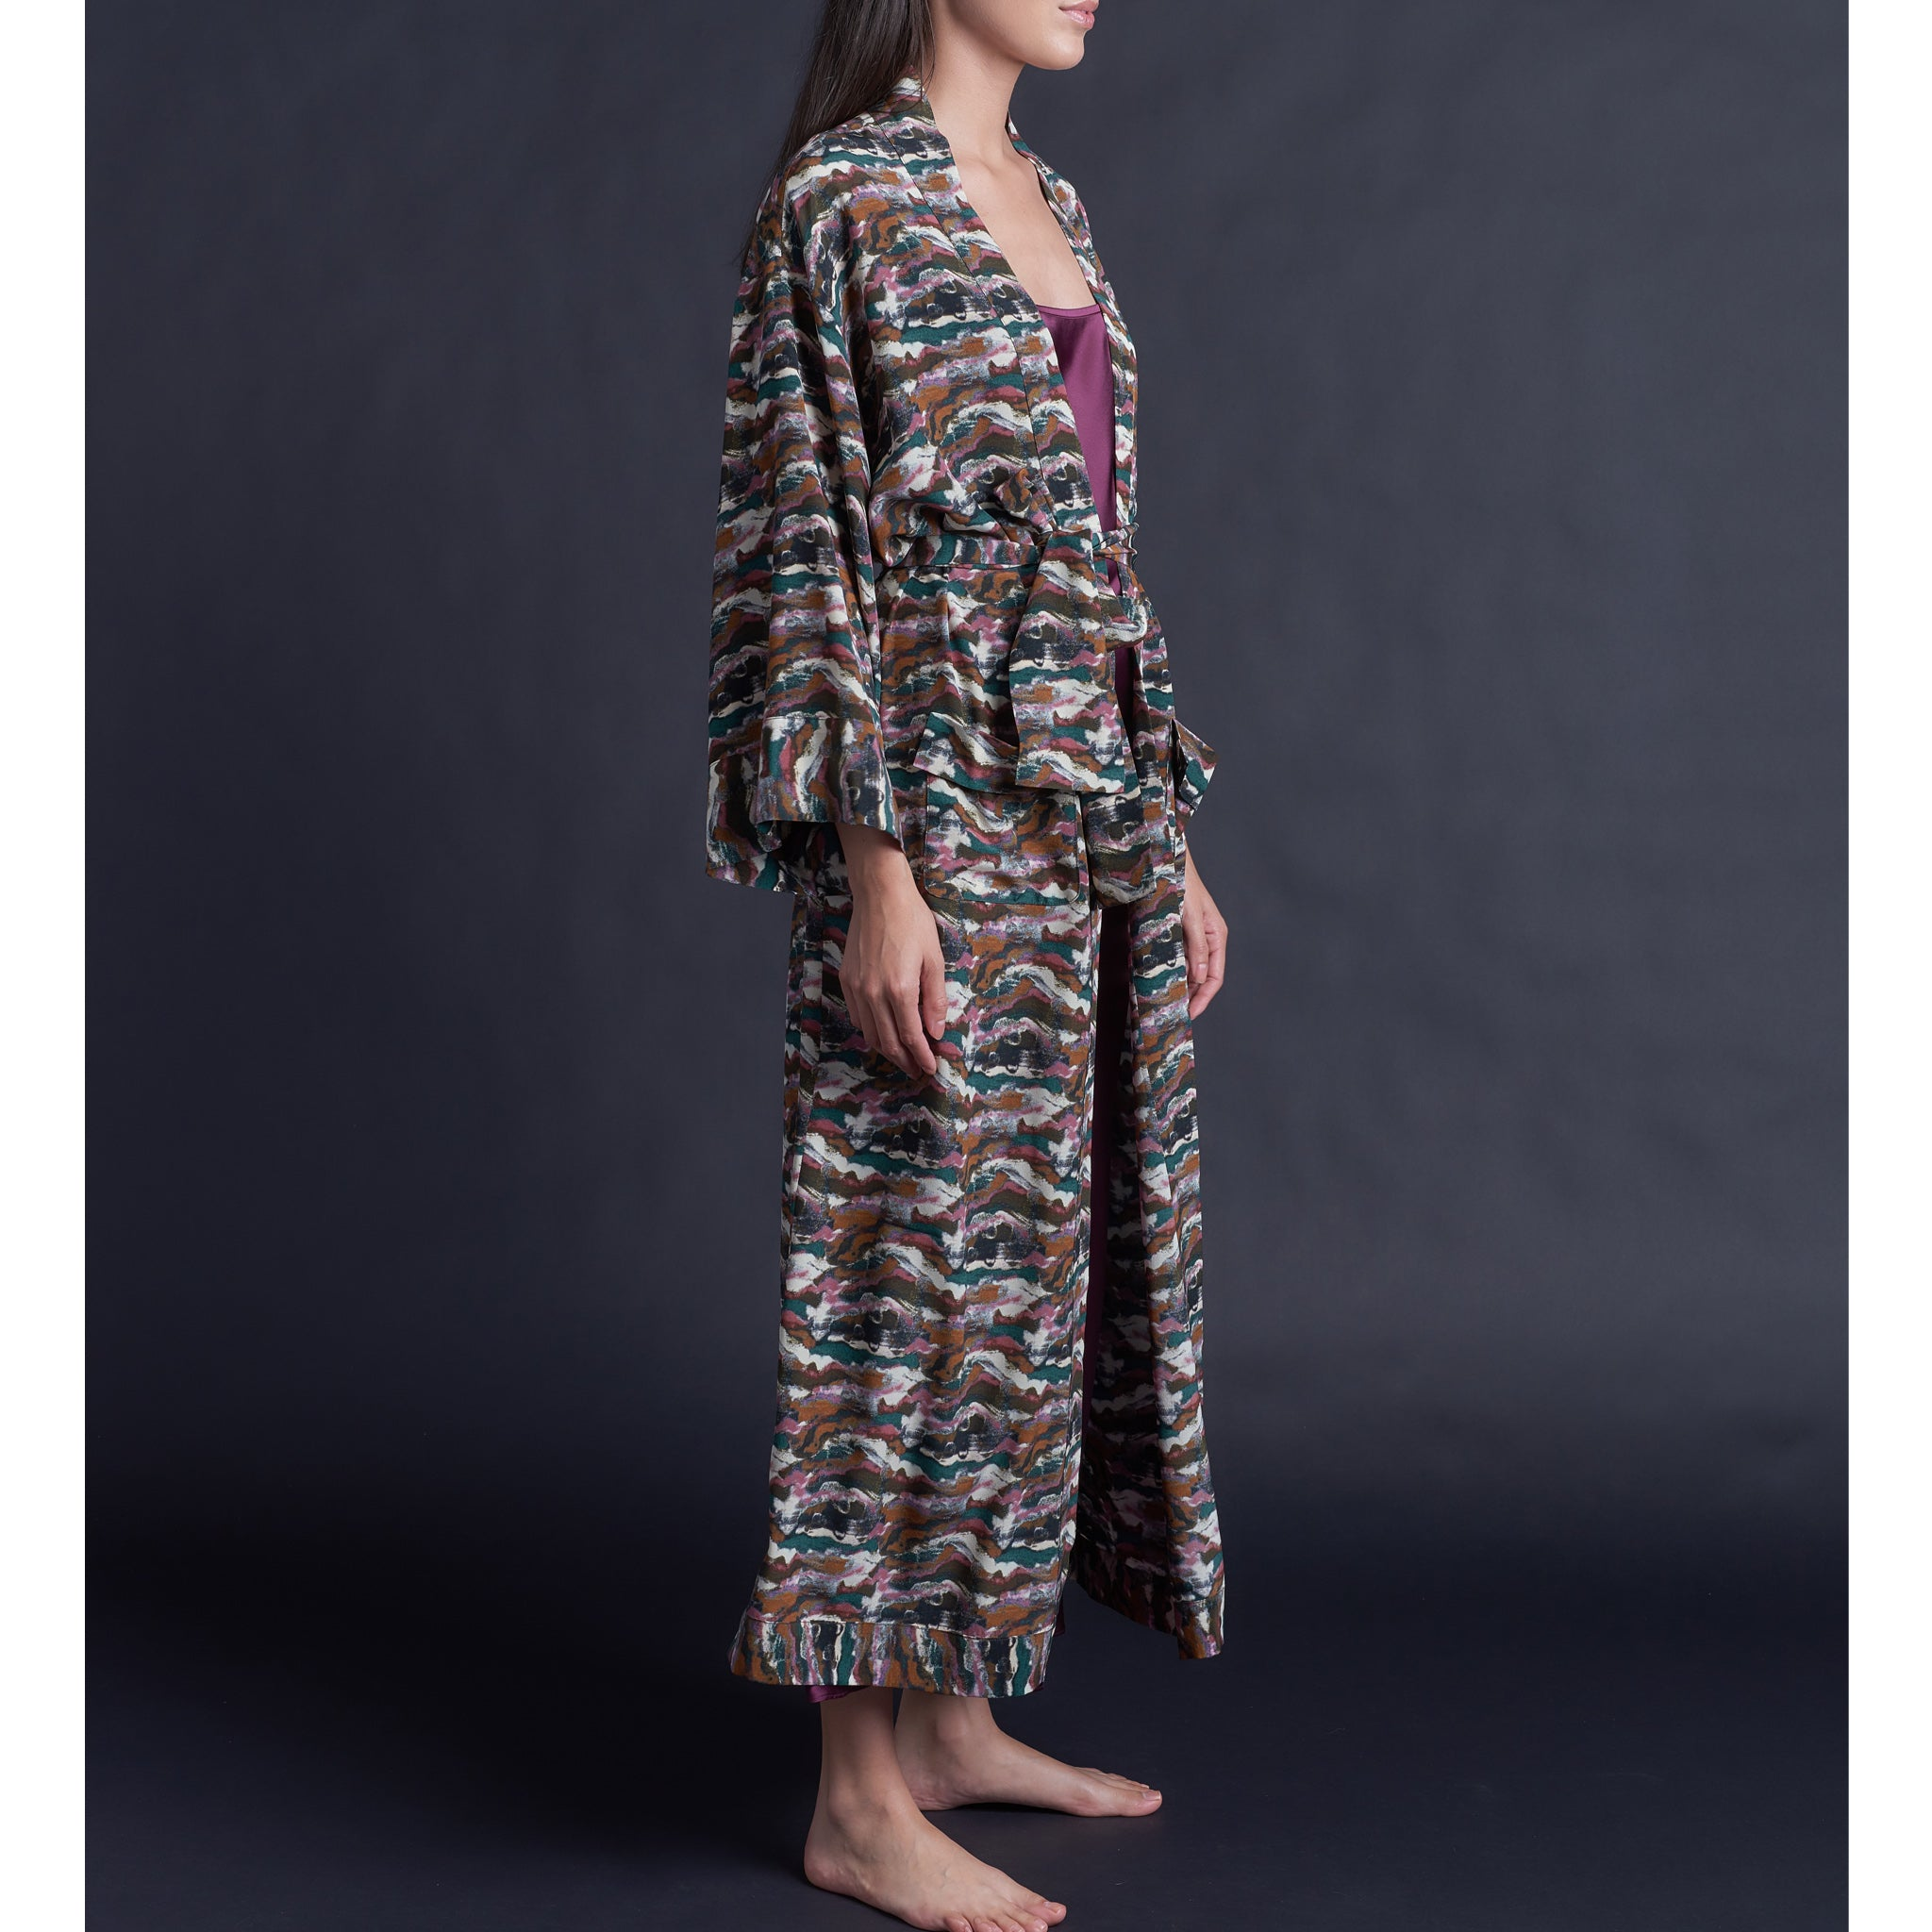 Asteria Kimono Robe in Liberty of London Sandstorm Silk Crepe De Chine